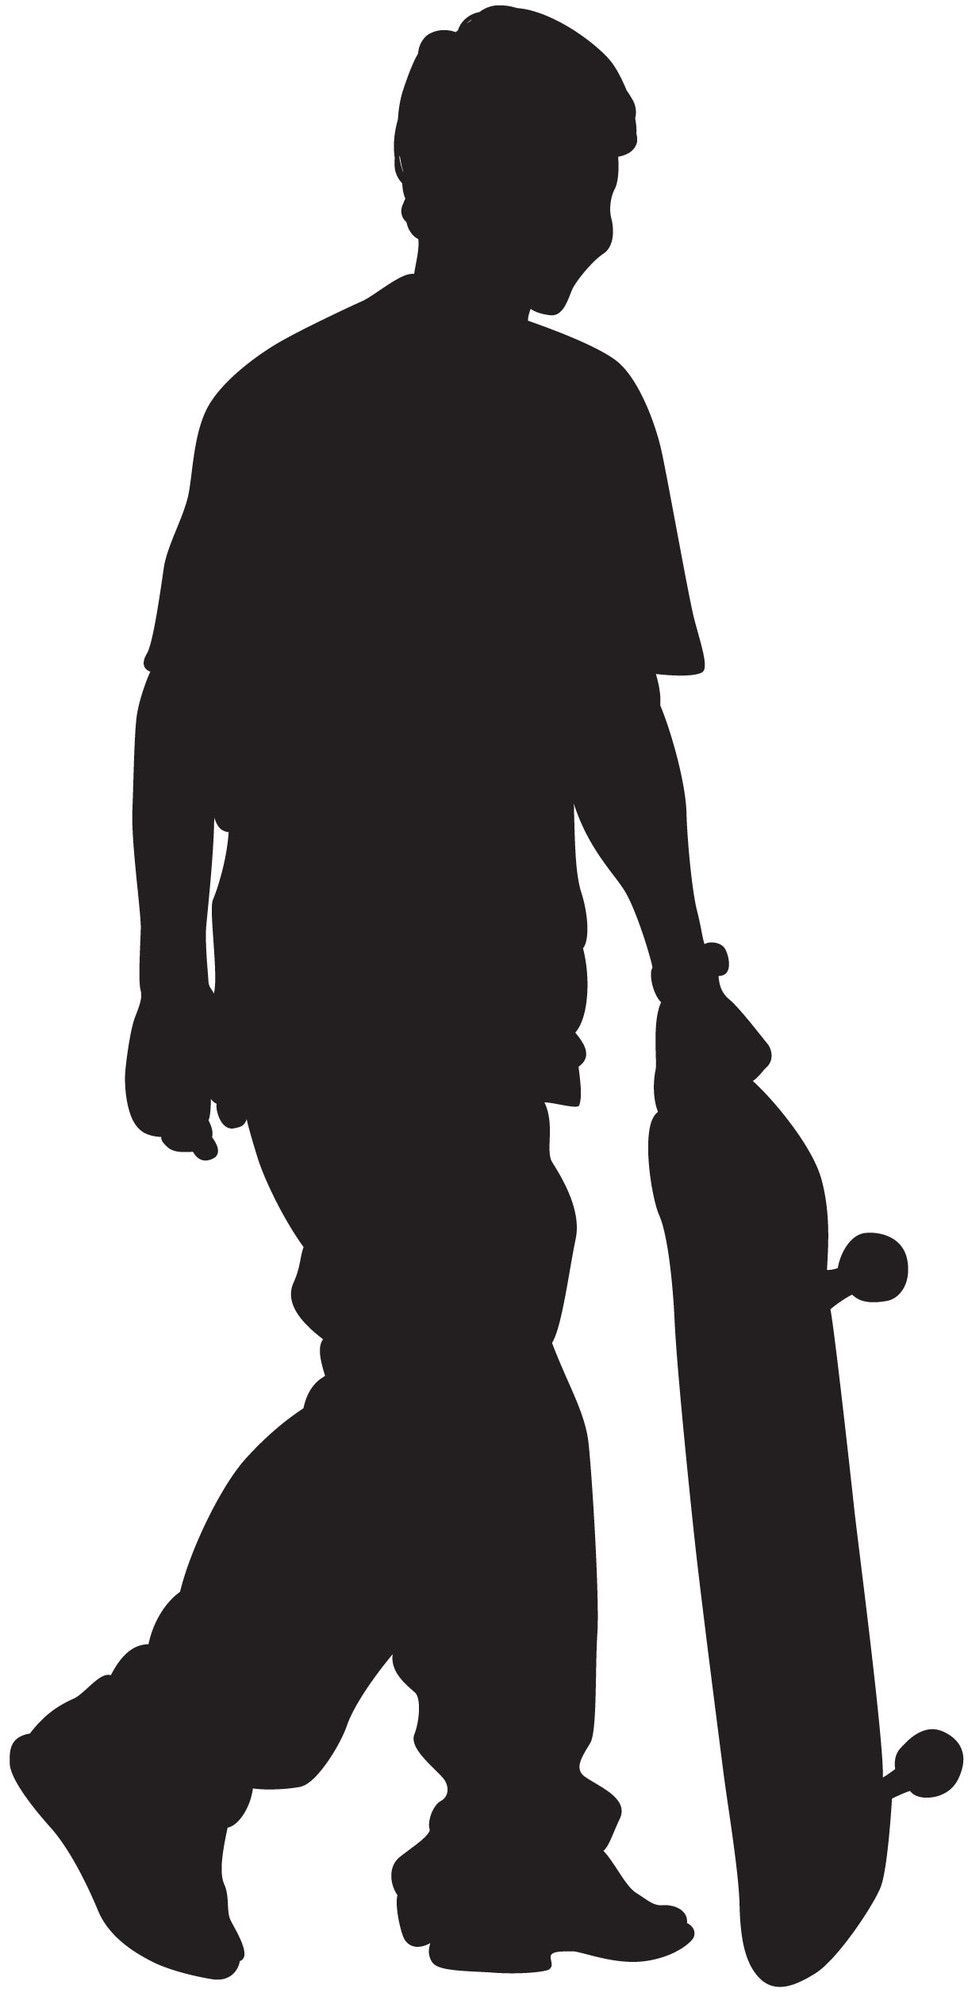 Skateboard Silhouette XI Cutout Wall Decal